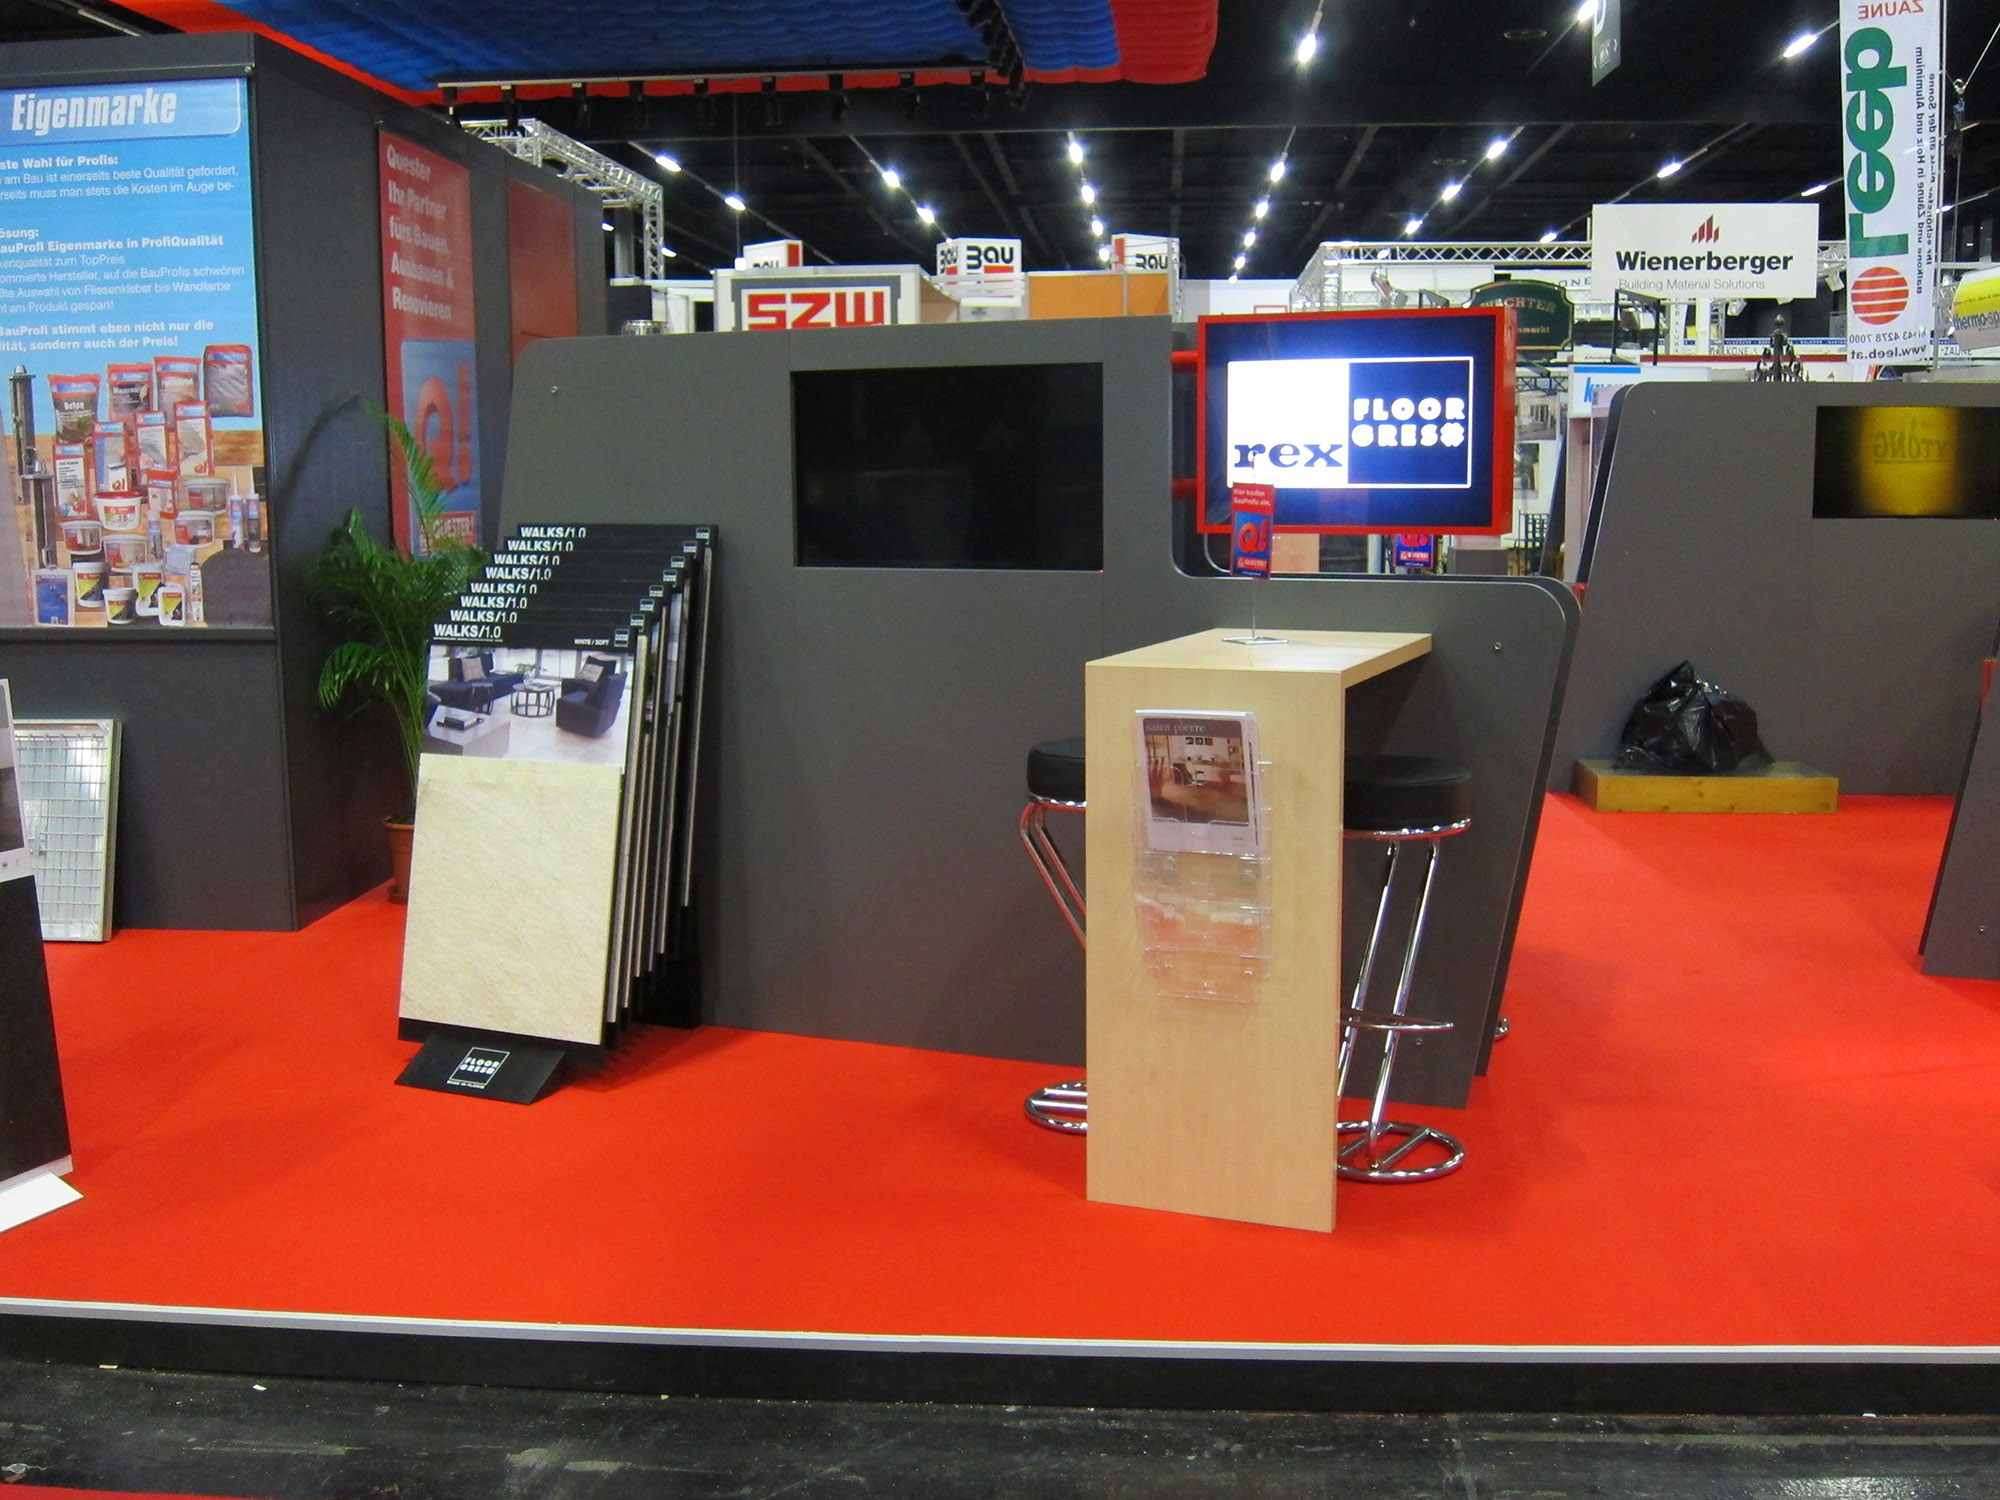 Quester_Messe_03.jpg